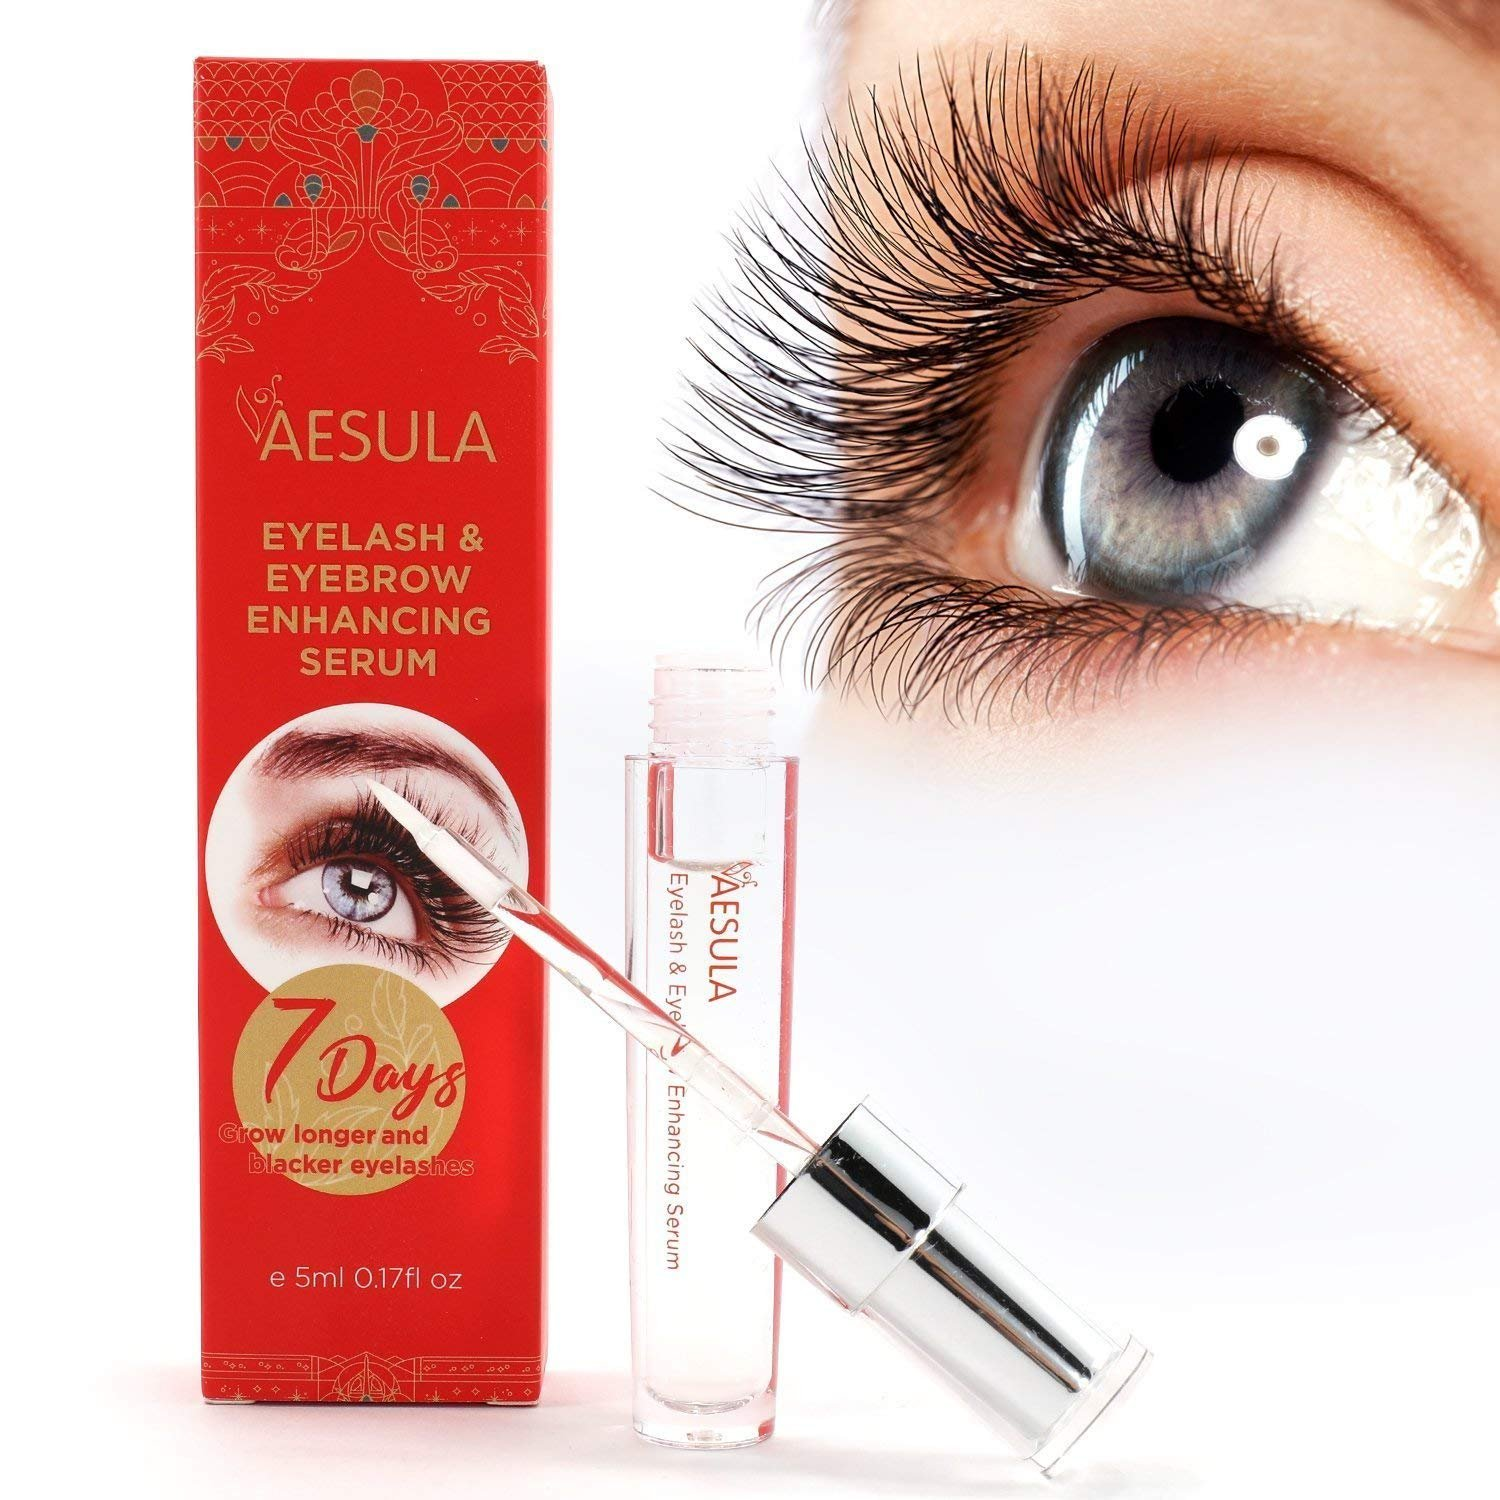 [Upgraded] Aesula Eyelash Growth Serum, Enhancer Great For Eyelash Growing, Thickening and Strengthening of Eyelashes, Best Eyelash Growth Serum for 2018